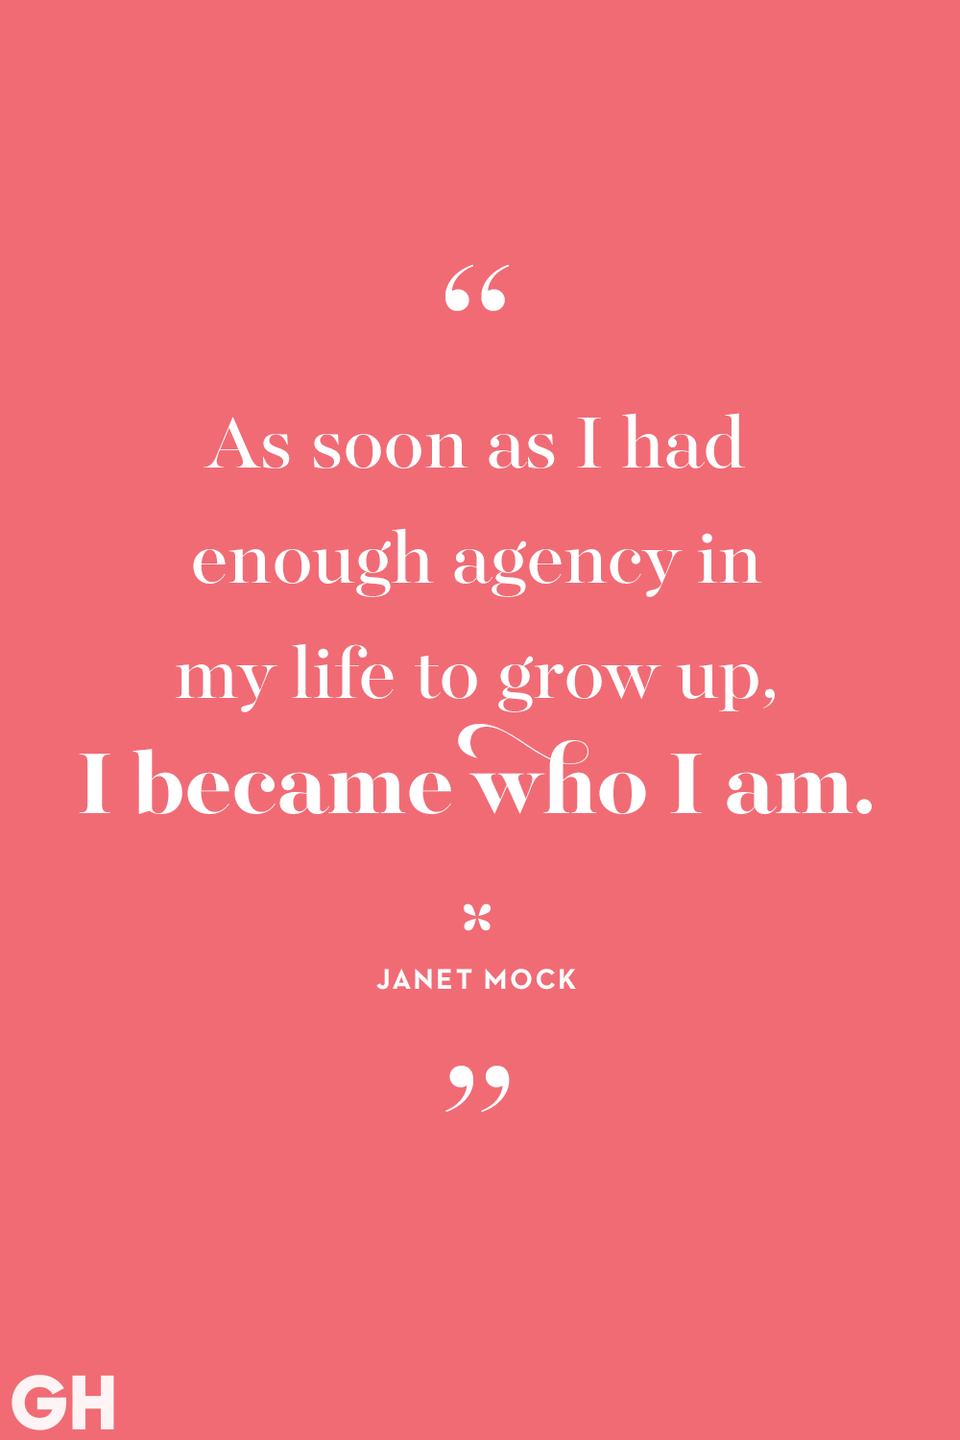 <p>As soon as I had enough agency in my life to grow up, I became who I am.</p>